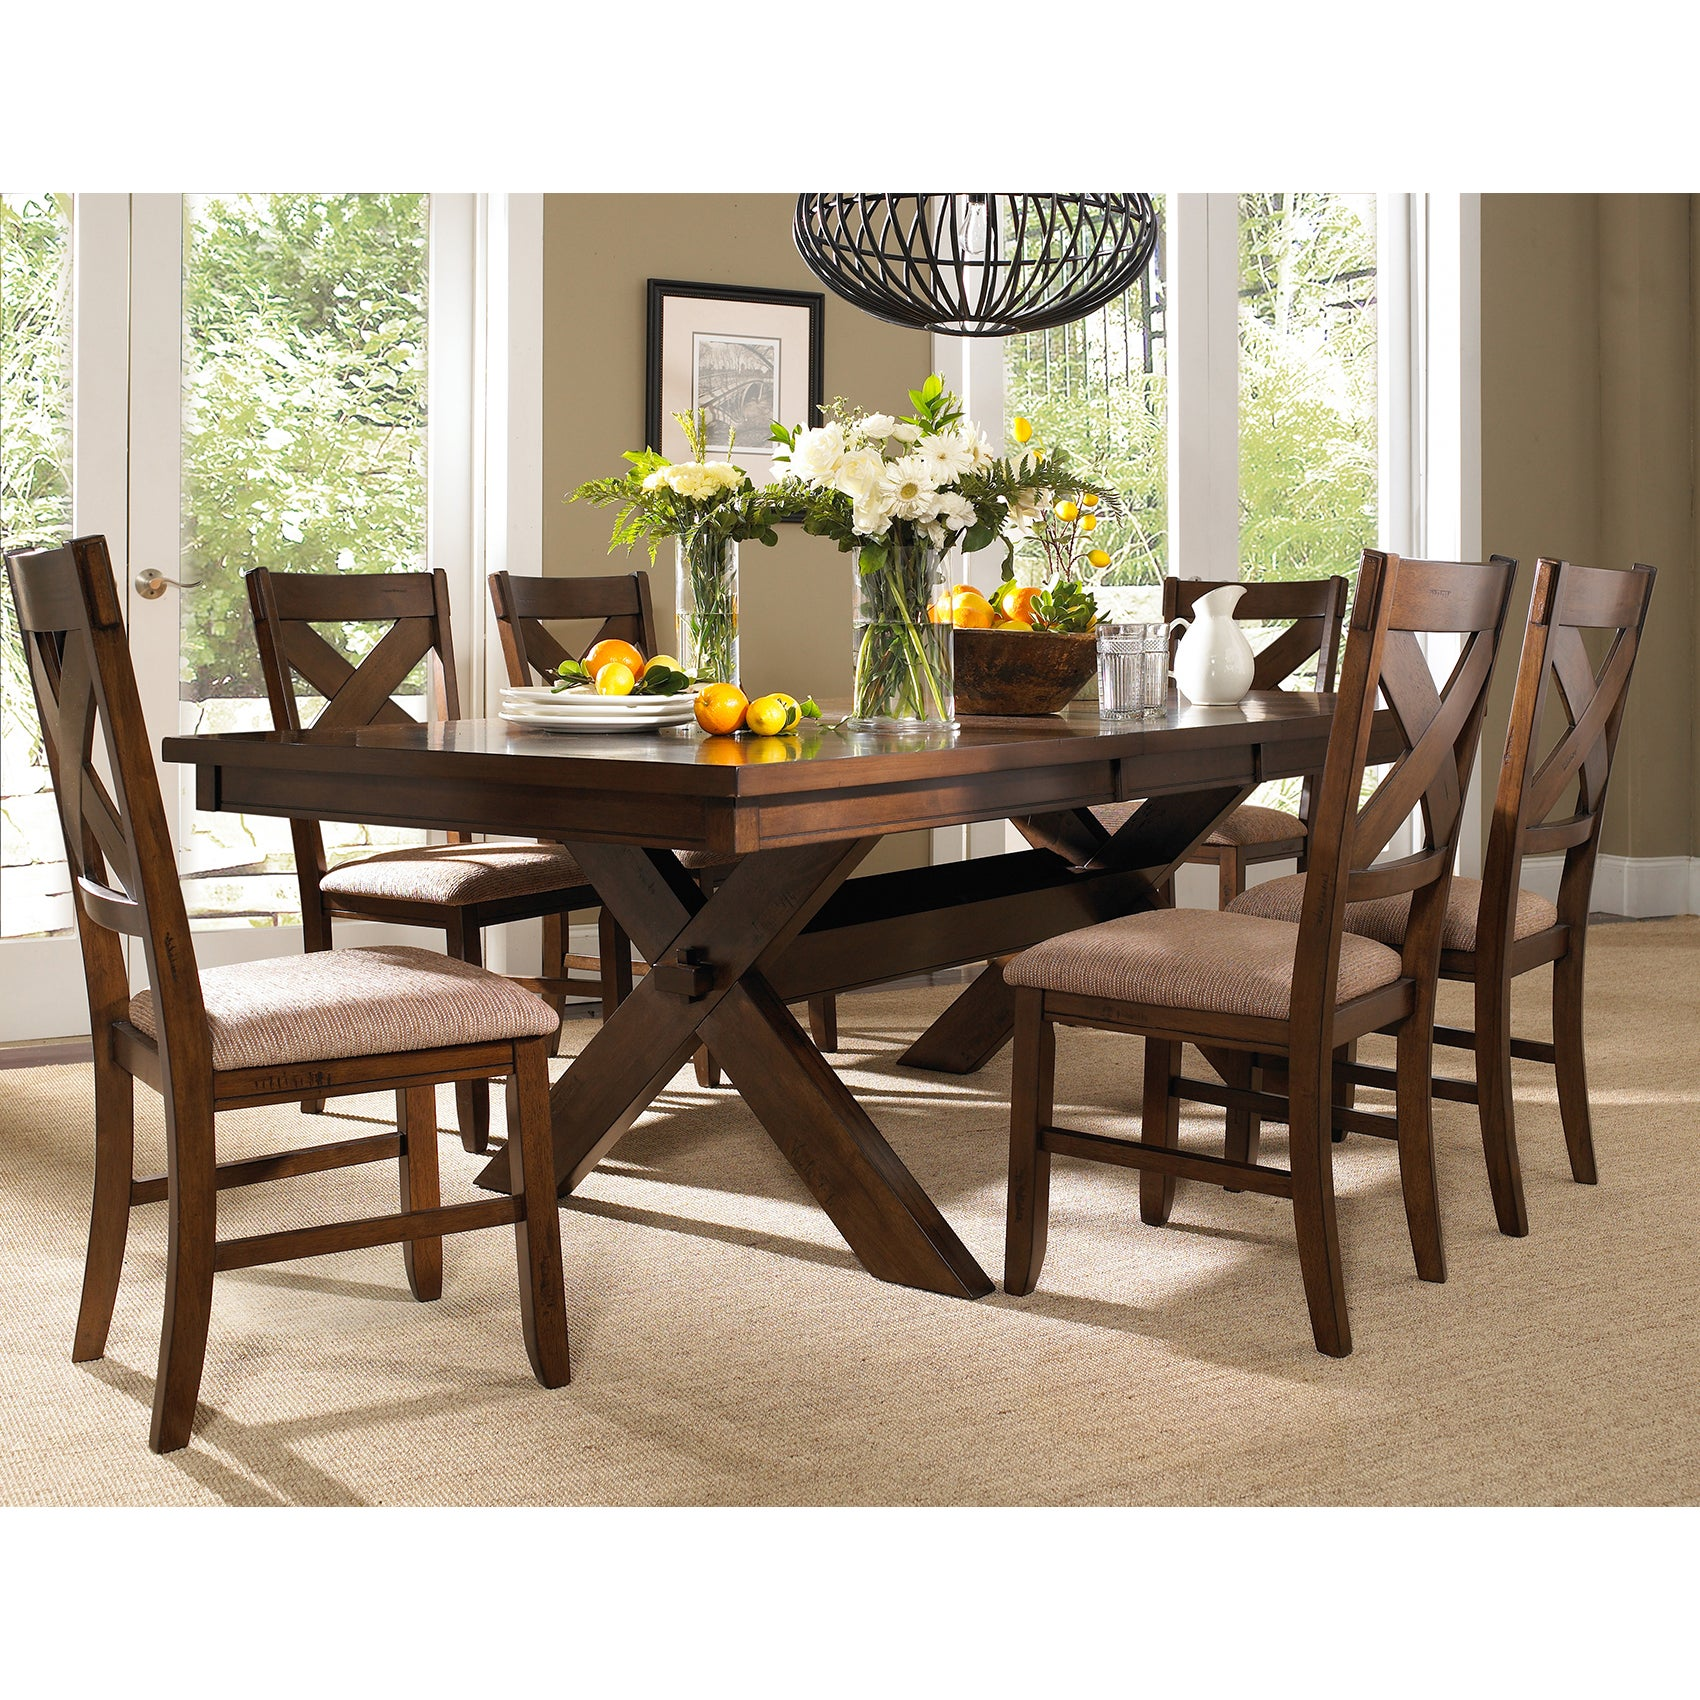 Unbranded 7 Piece Solid Wood Dining Set with Table and 6 ...